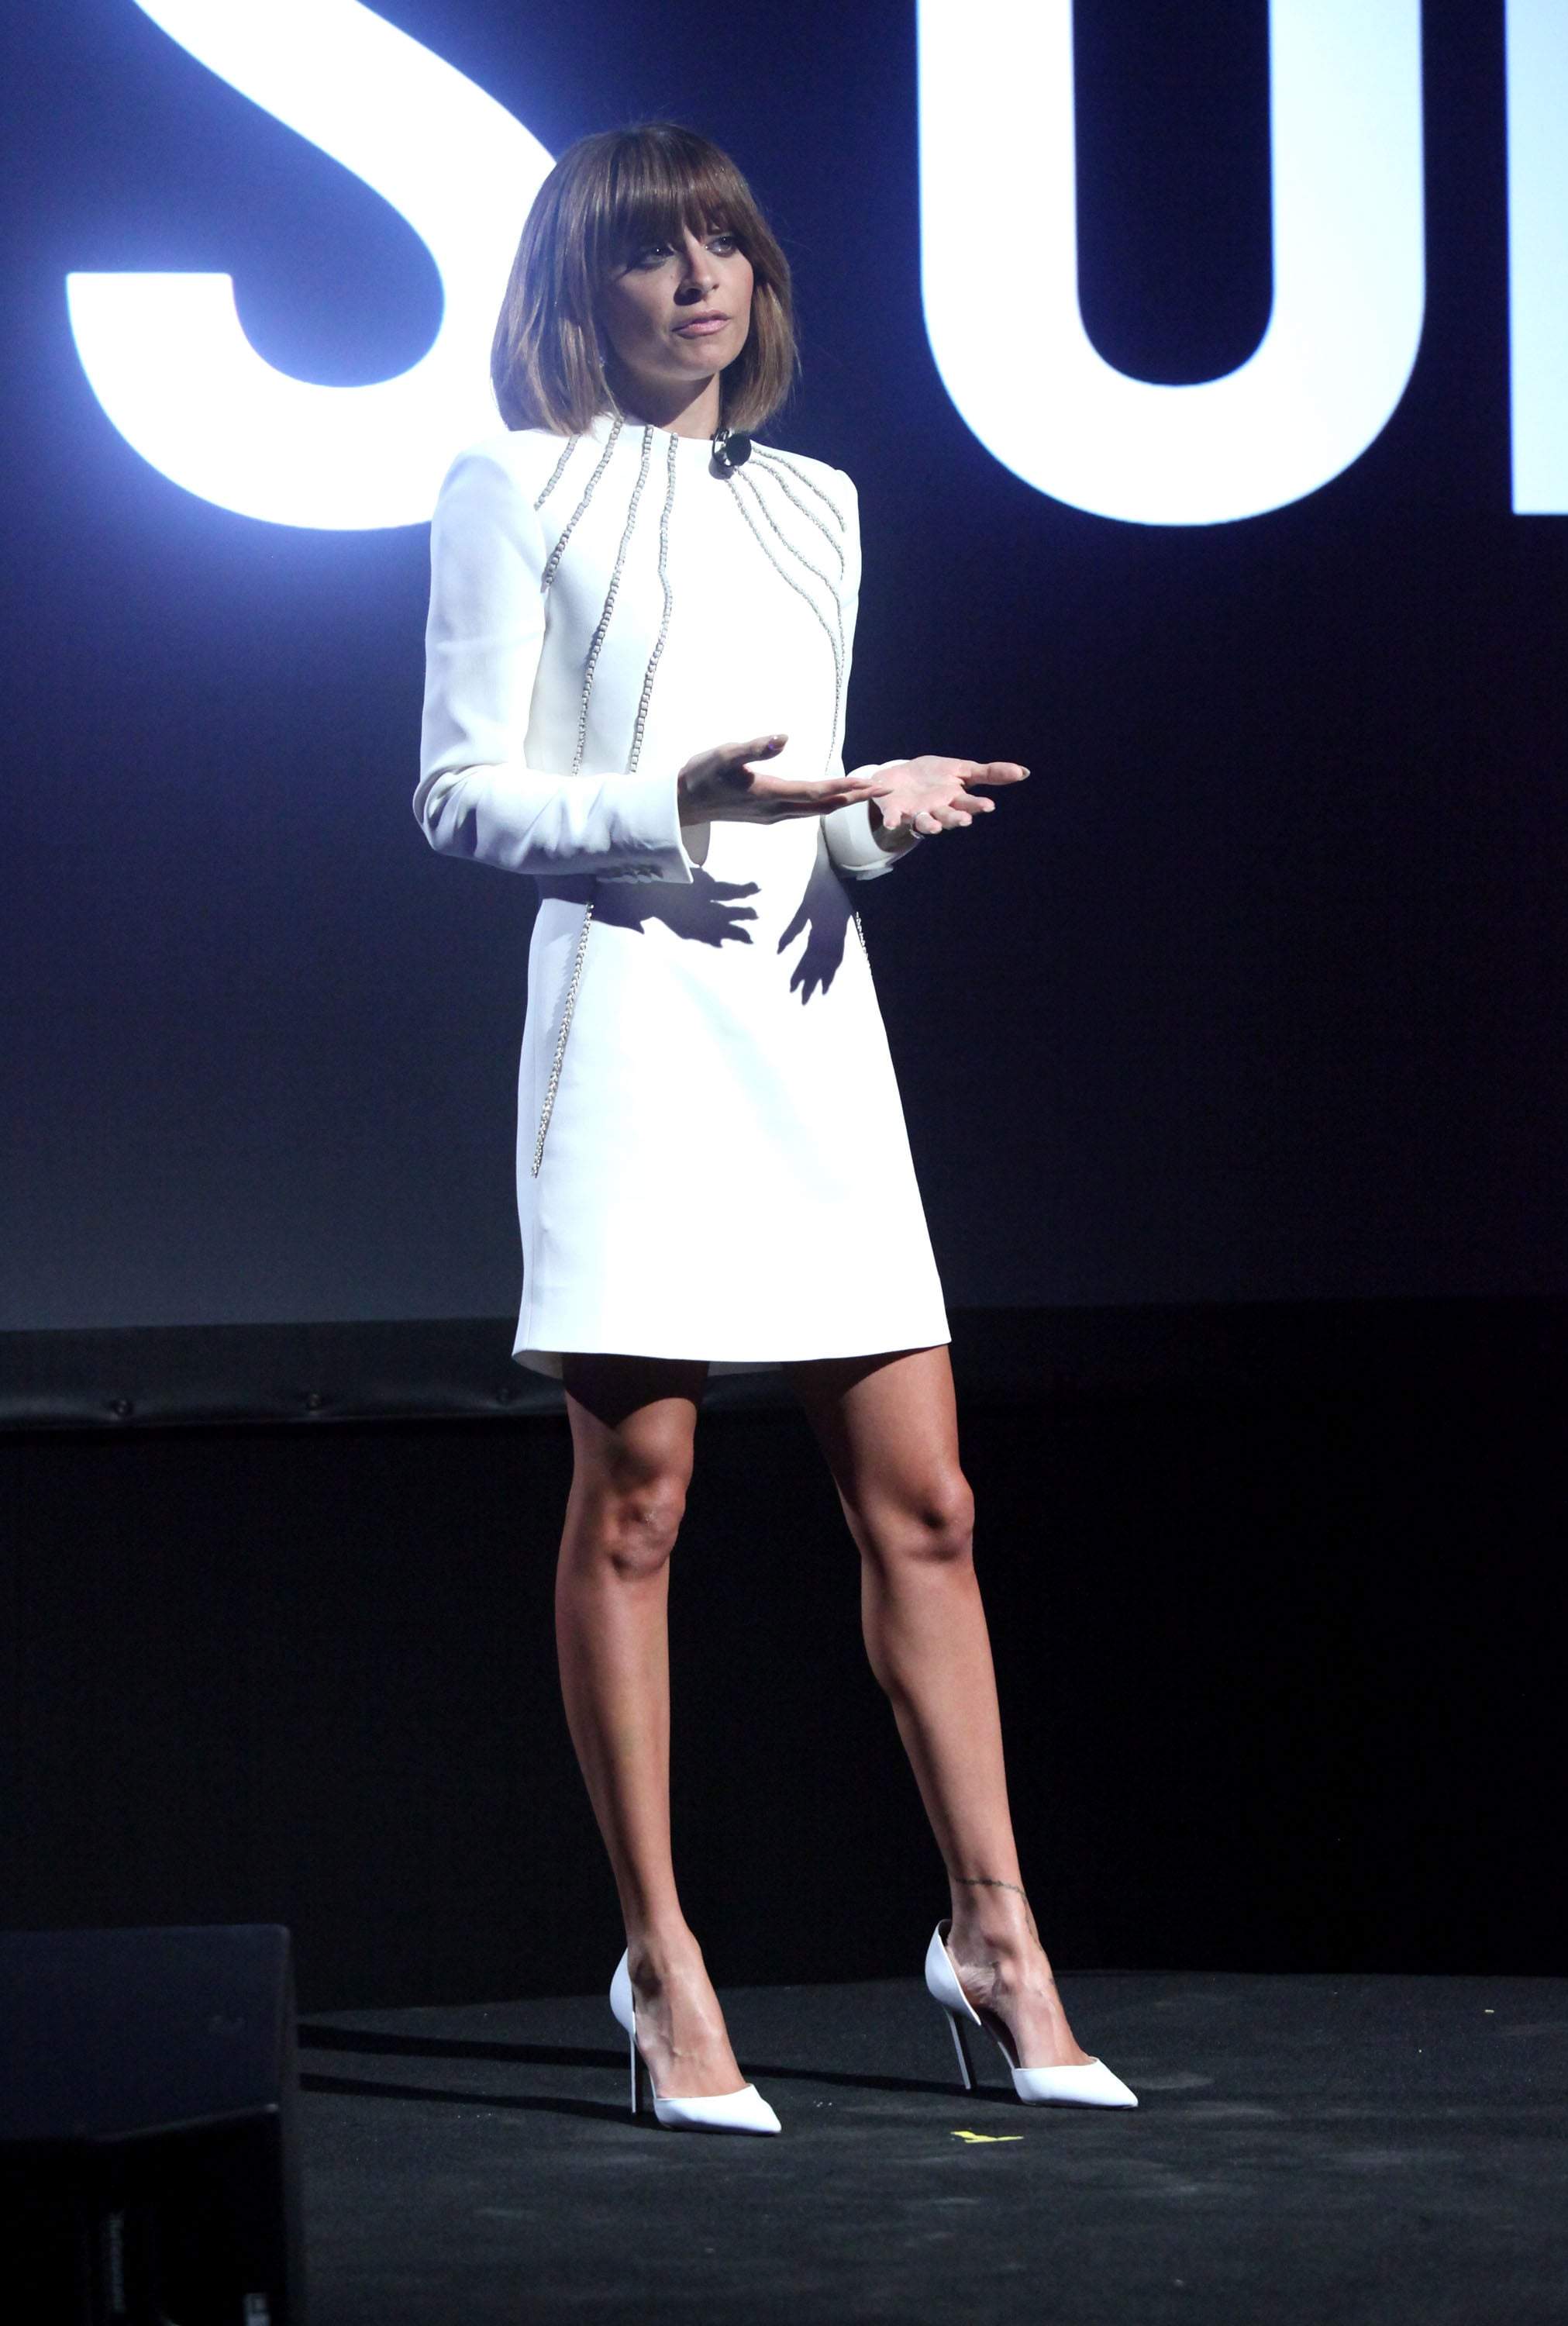 Nicole spoke on stage during AOL's Digital Content NewFronts while promoting her online show, Candidly Nicole, in April 2013.